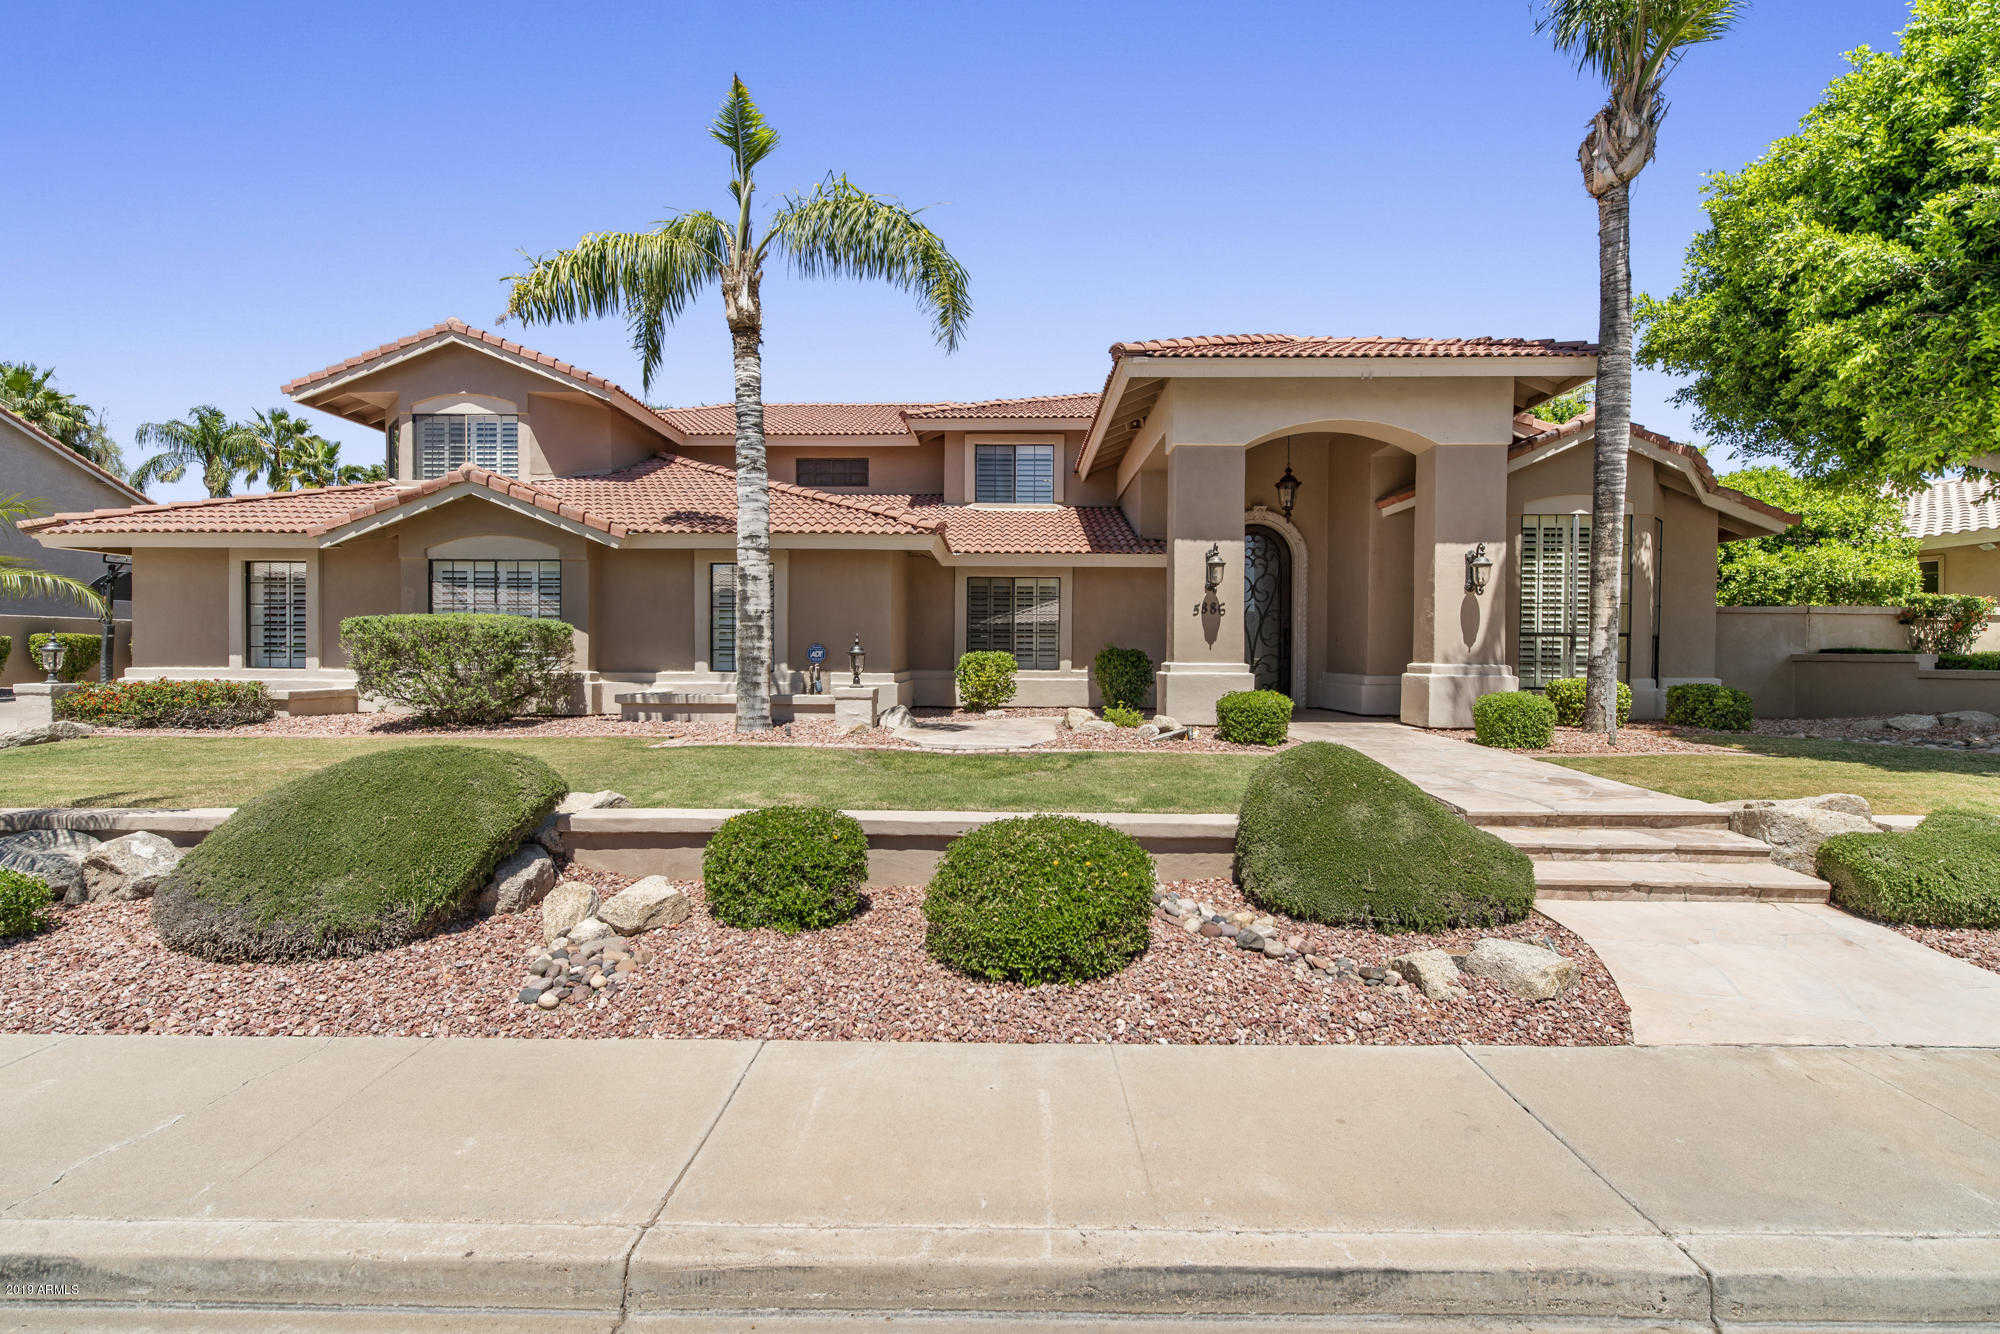 $692,000 - 4Br/5Ba - Home for Sale in Hamilton Arrowhead Ranch Lot 1-75 Tr A-d, Glendale